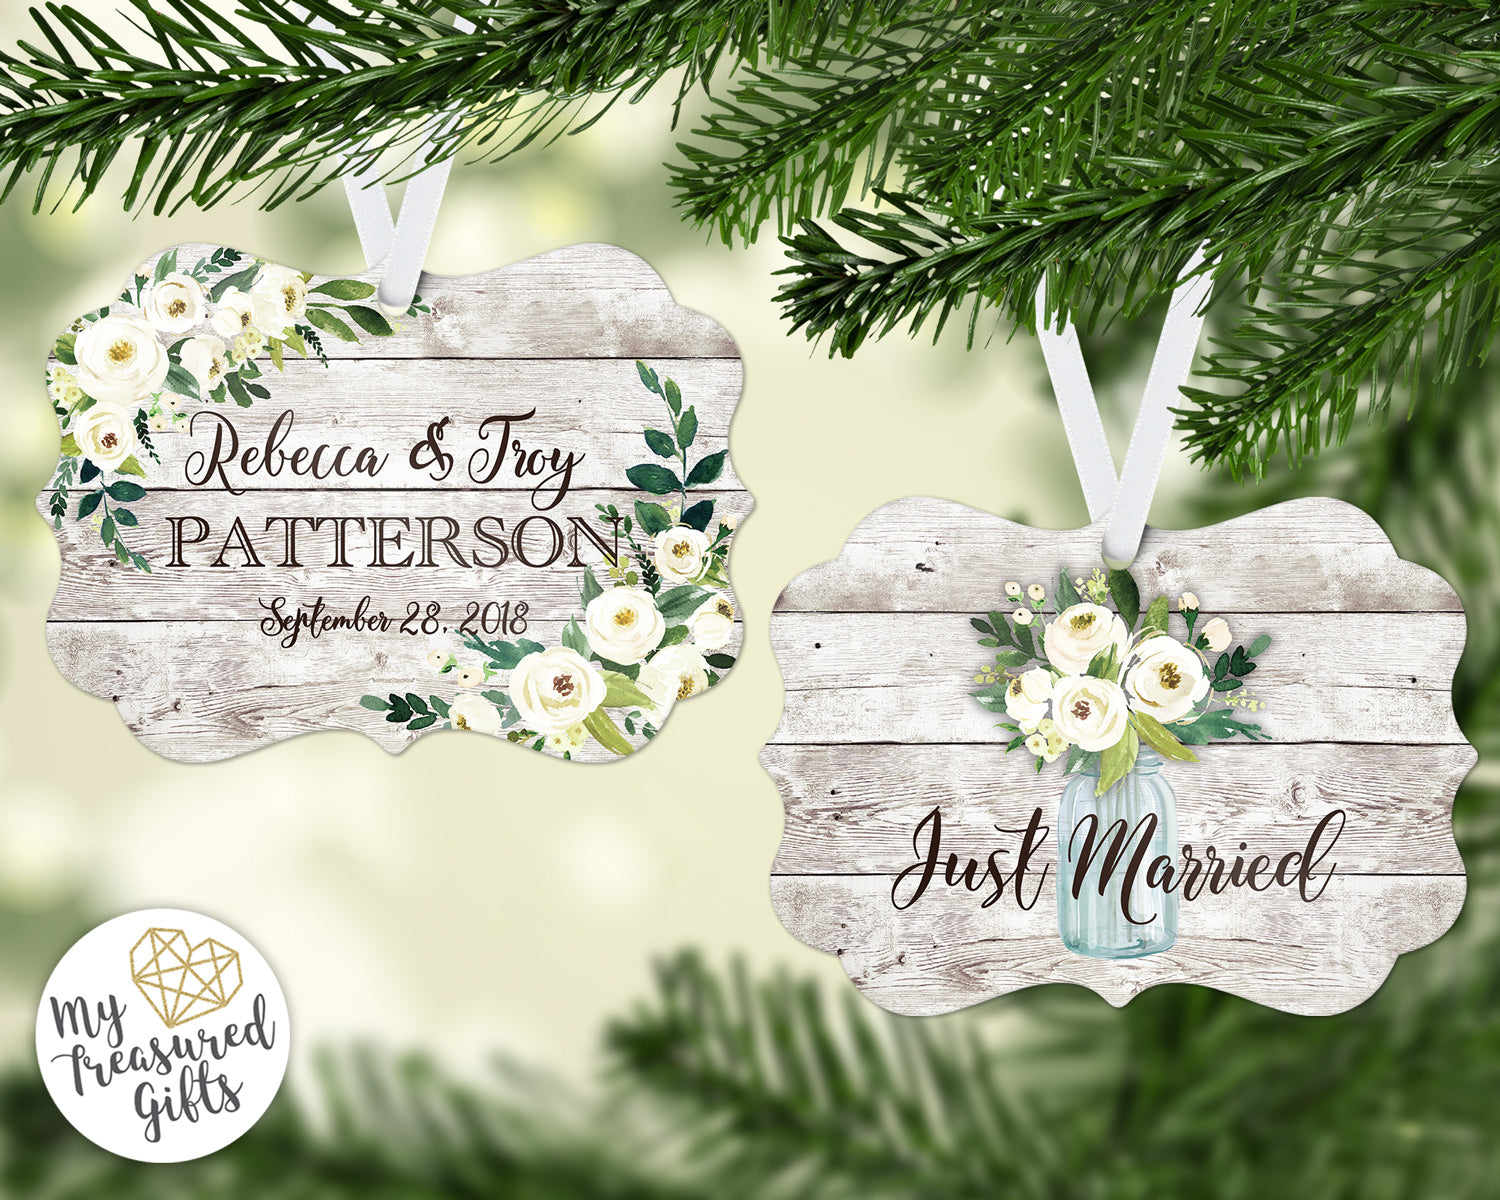 Rustic Just Married Wedding Ornament - My Treasured Gifts Co